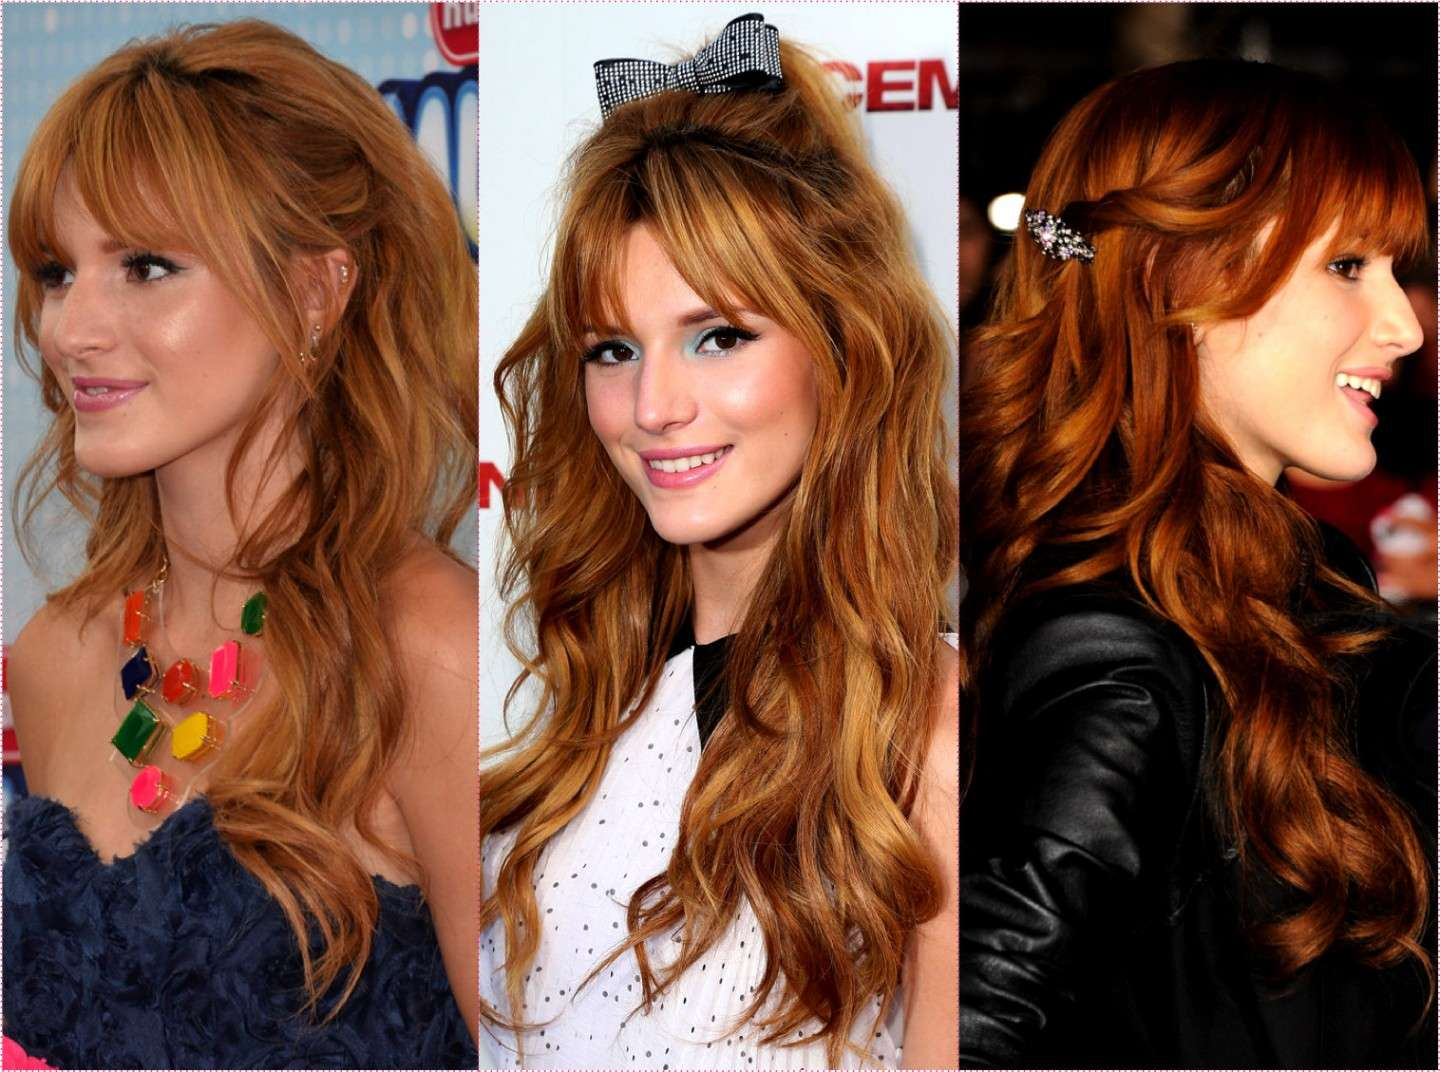 Acconciature di Bella Thorne